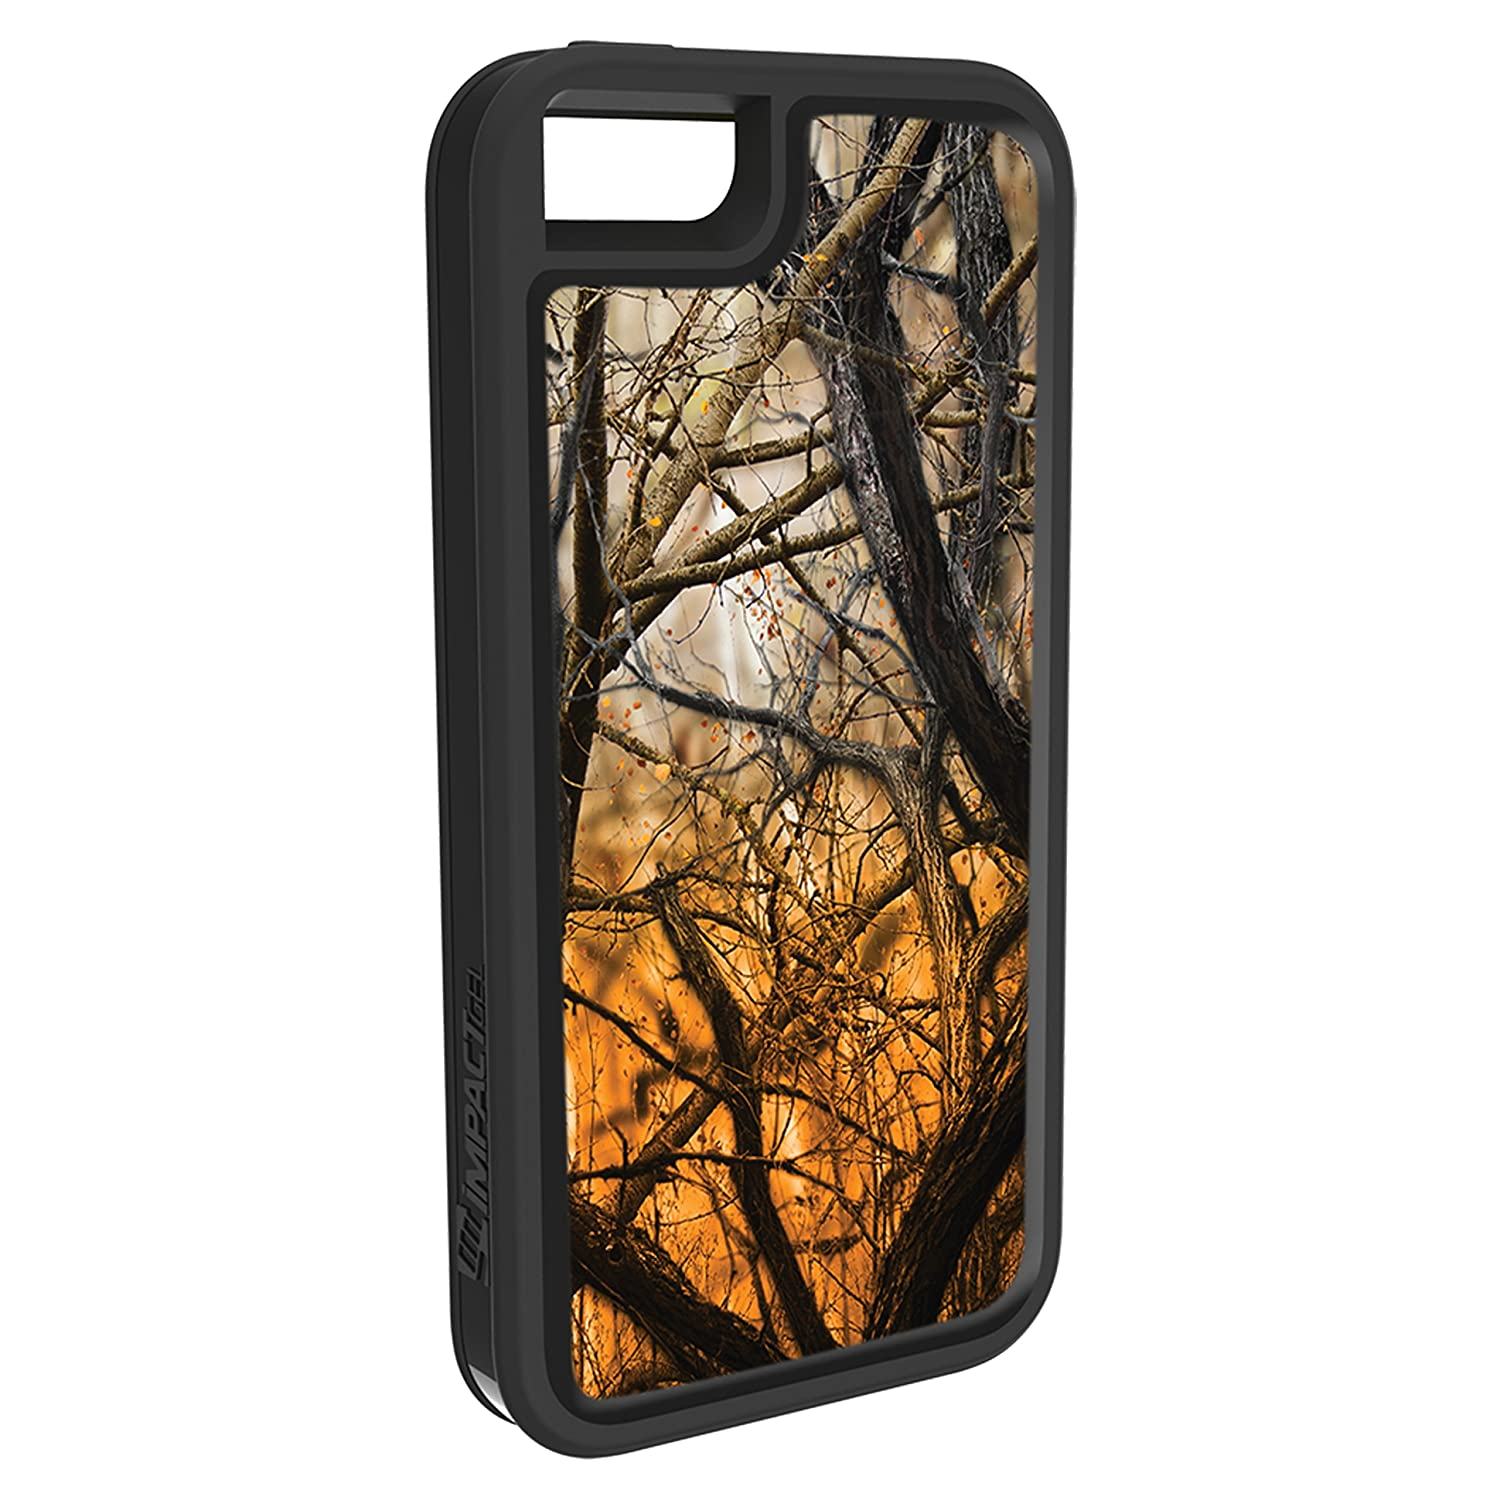 the latest 9a2d0 64938 Impact Gel Xtreme Armour I5-SMCA-325 Phone Case for iPhone 5/5S Single Mold  Color, Camouflage